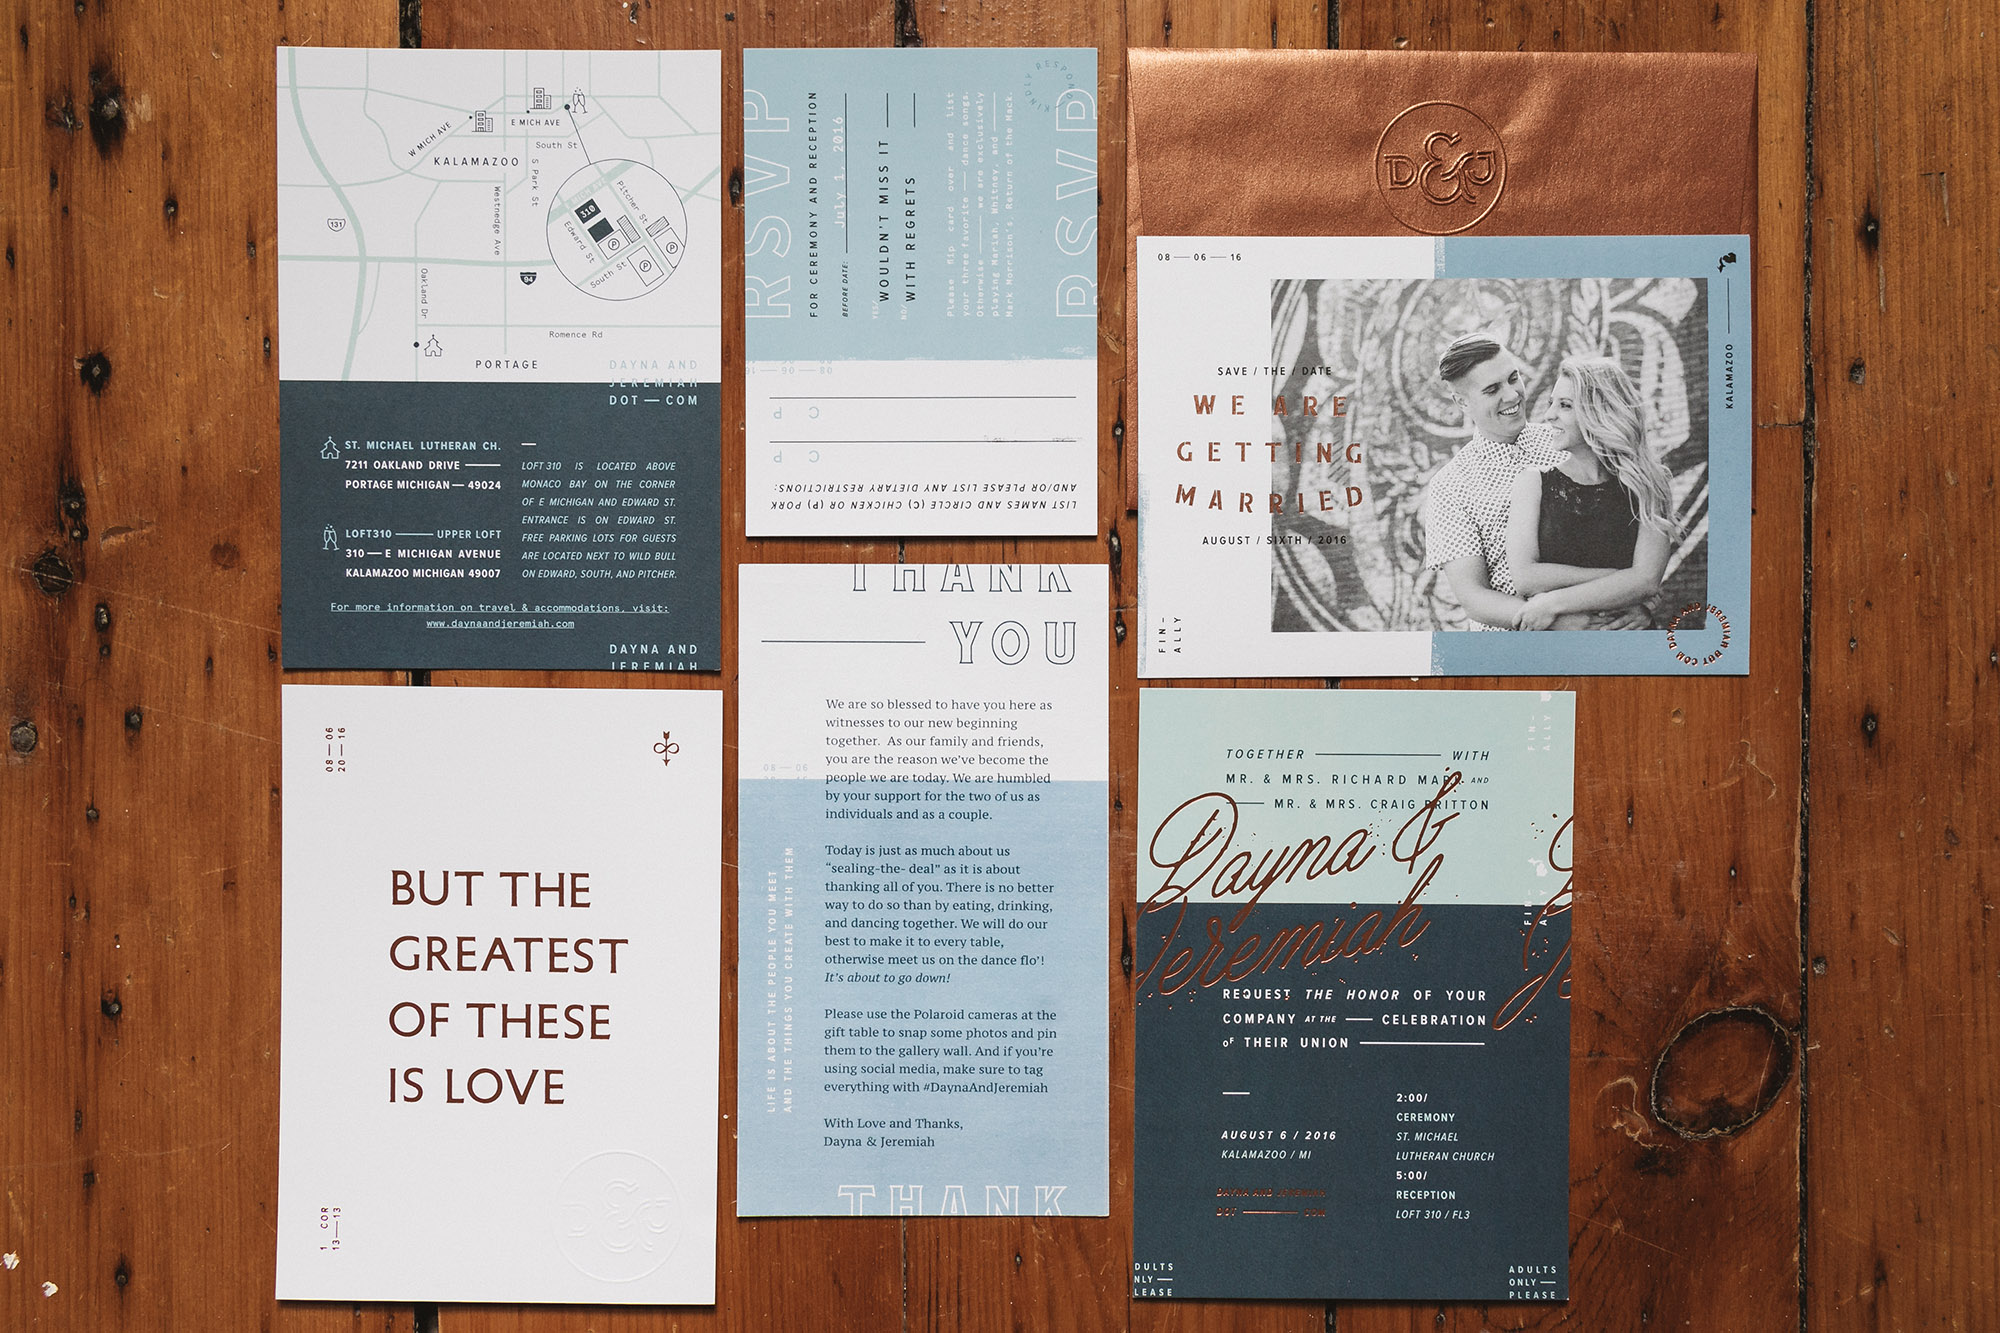 2JeremiahBrittonWedding invites-261-Recovered.jpg